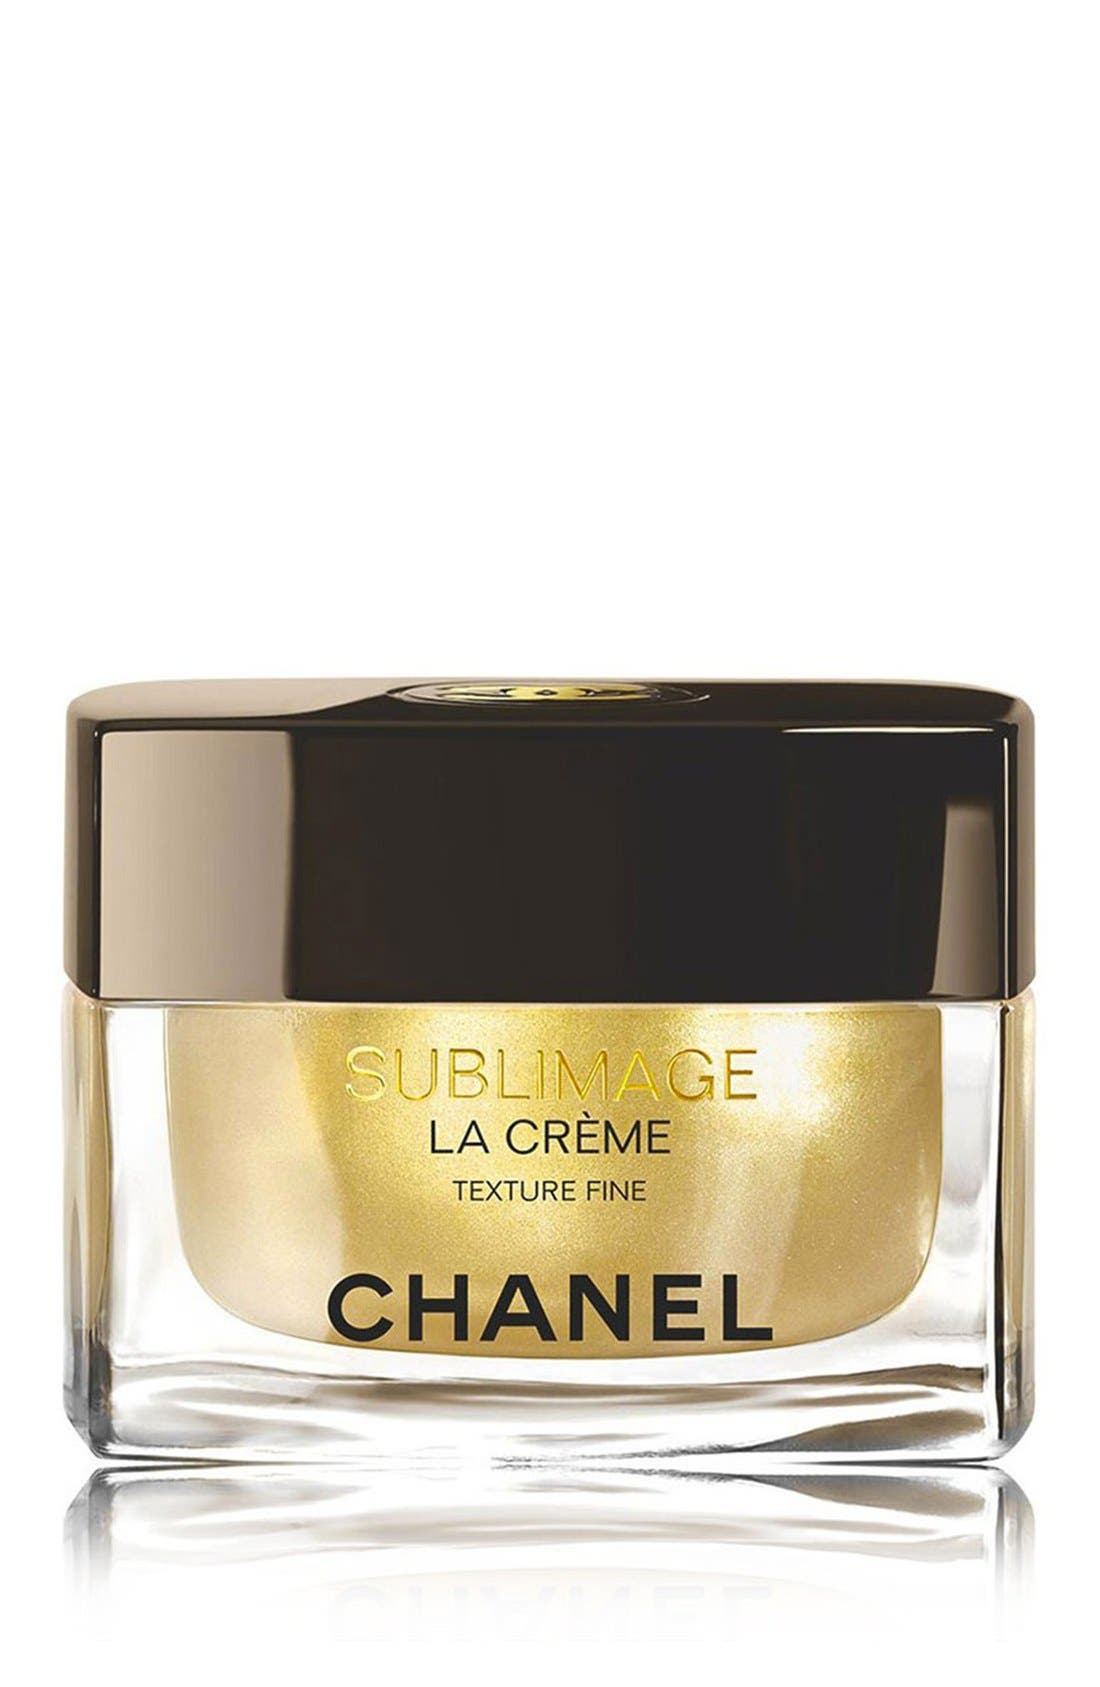 CHANEL,                             SUBLIMAGE LA CRÈME<br />Ultimate Skin Regeneration Texture Fine,                             Main thumbnail 1, color,                             NO COLOR